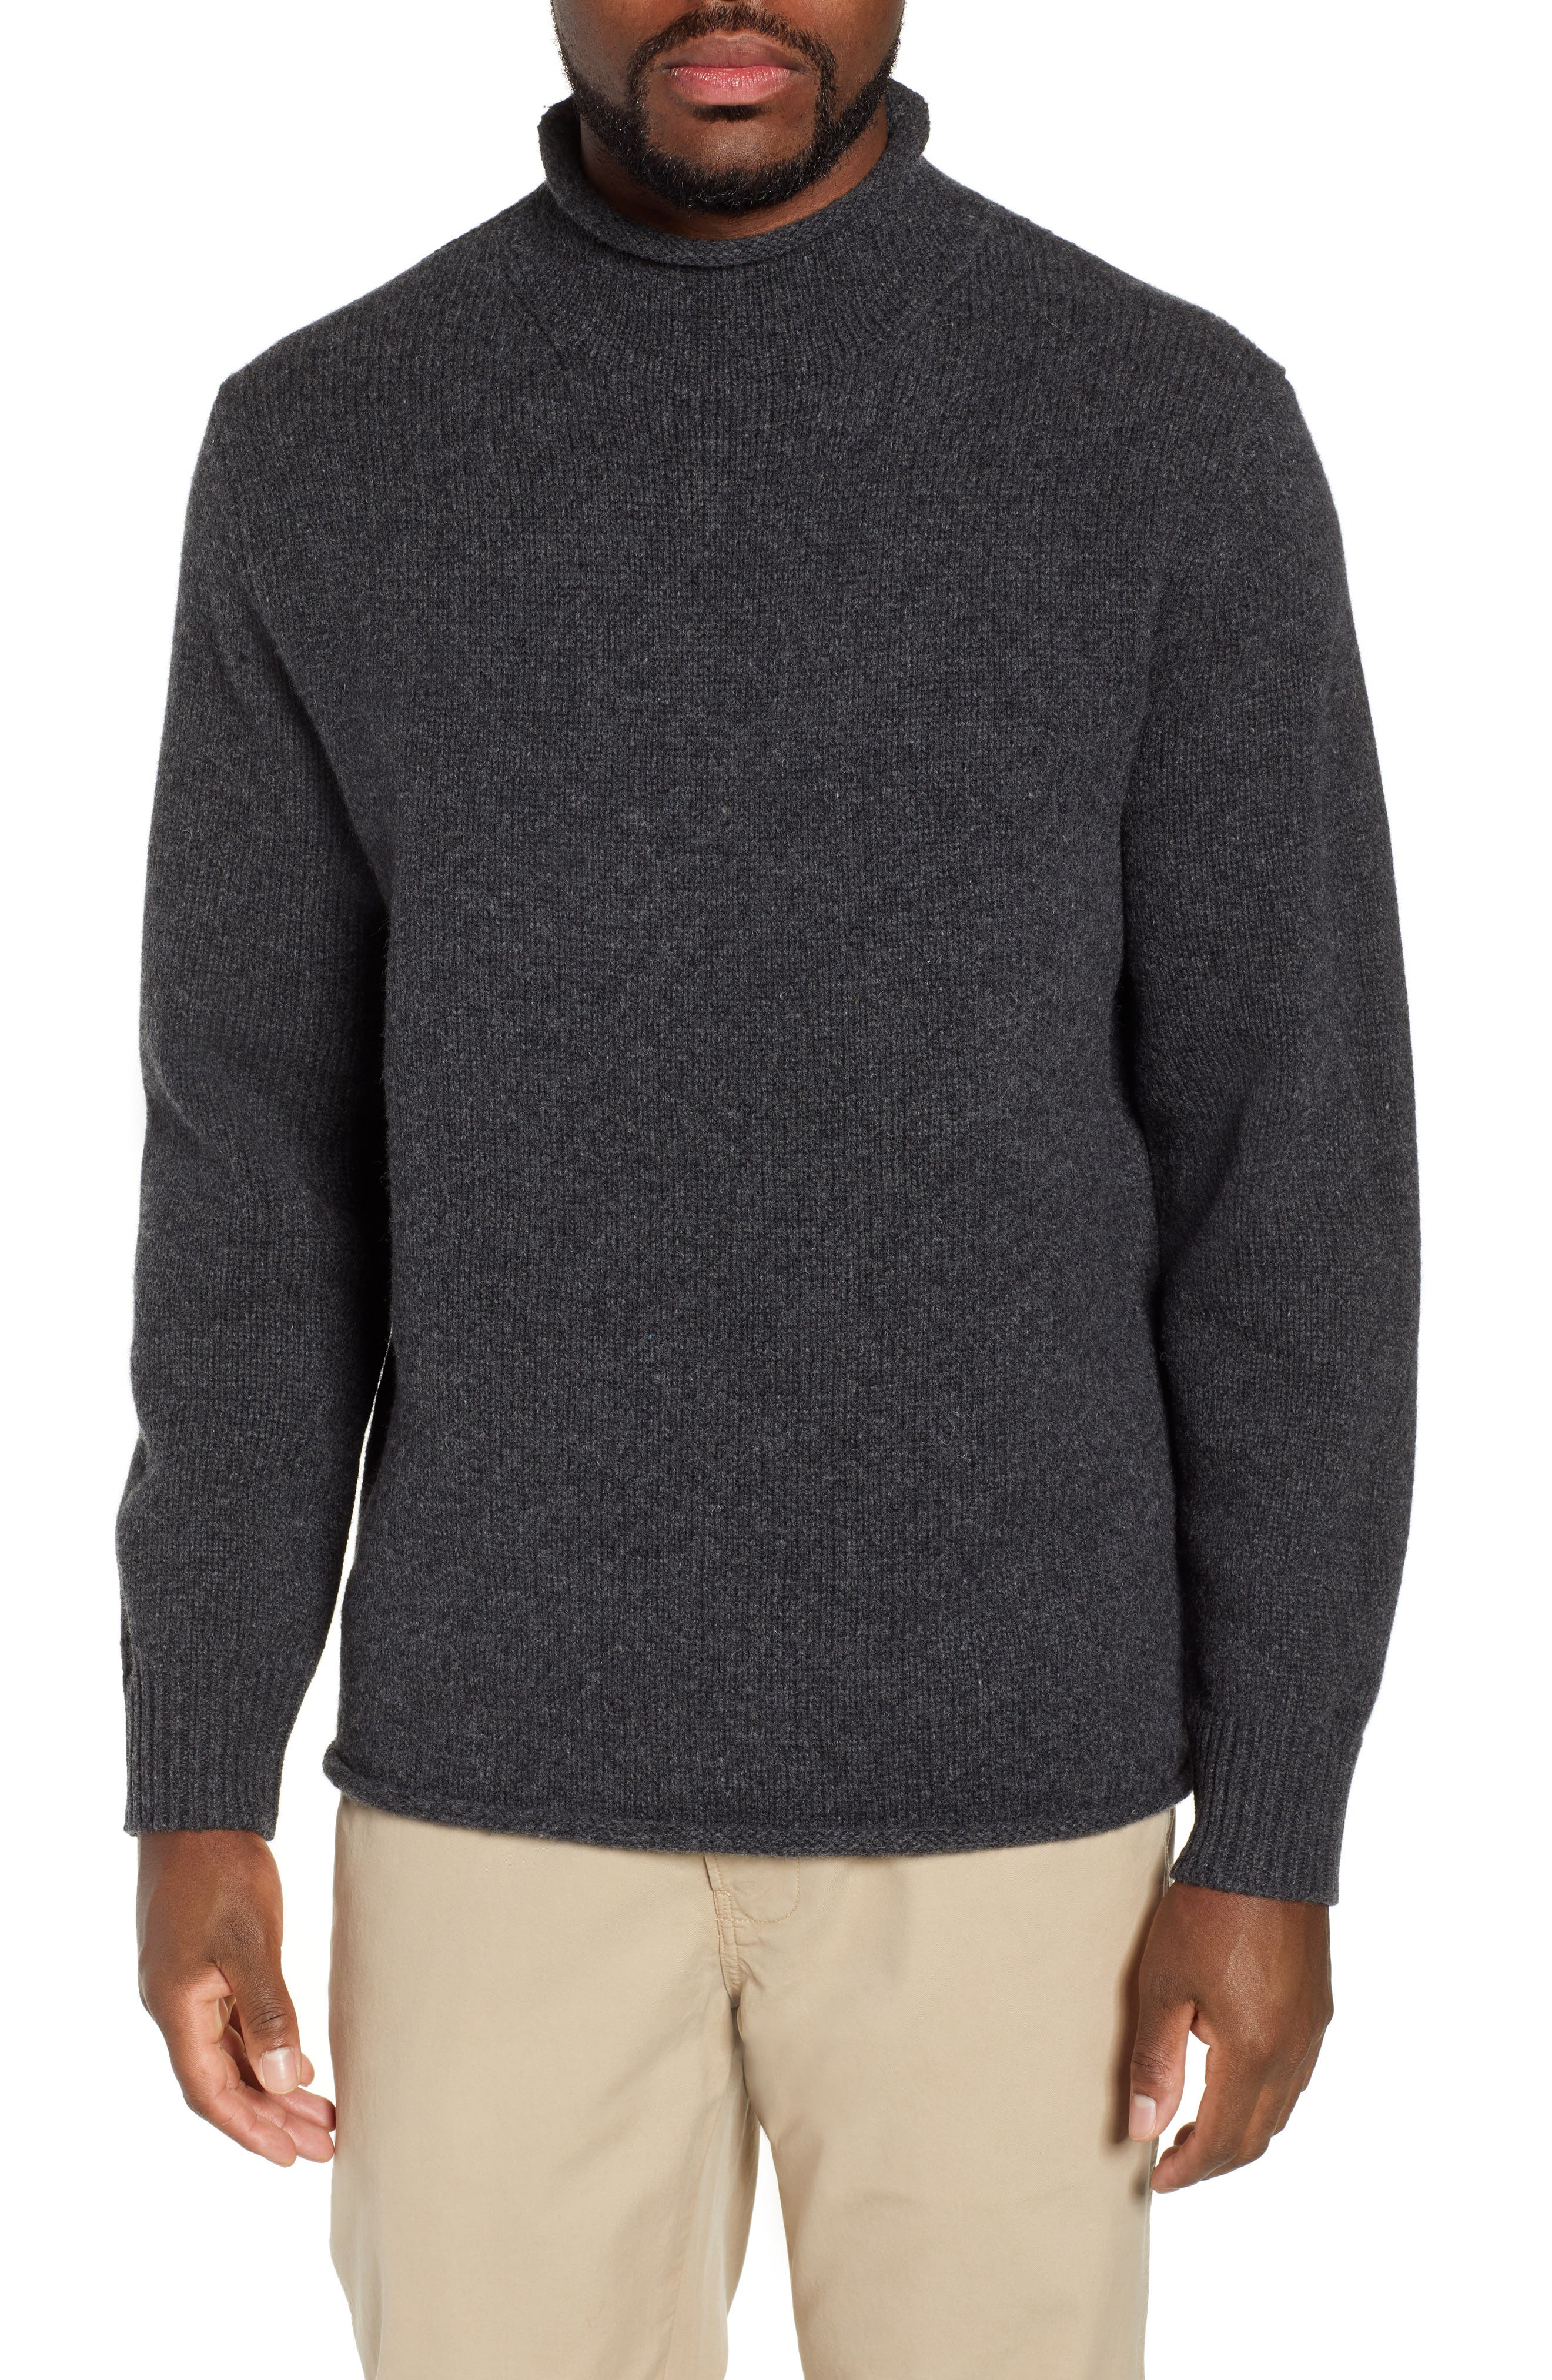 J.crew Relaxed Rollneck(TM) Lambswool Sweater, Grey